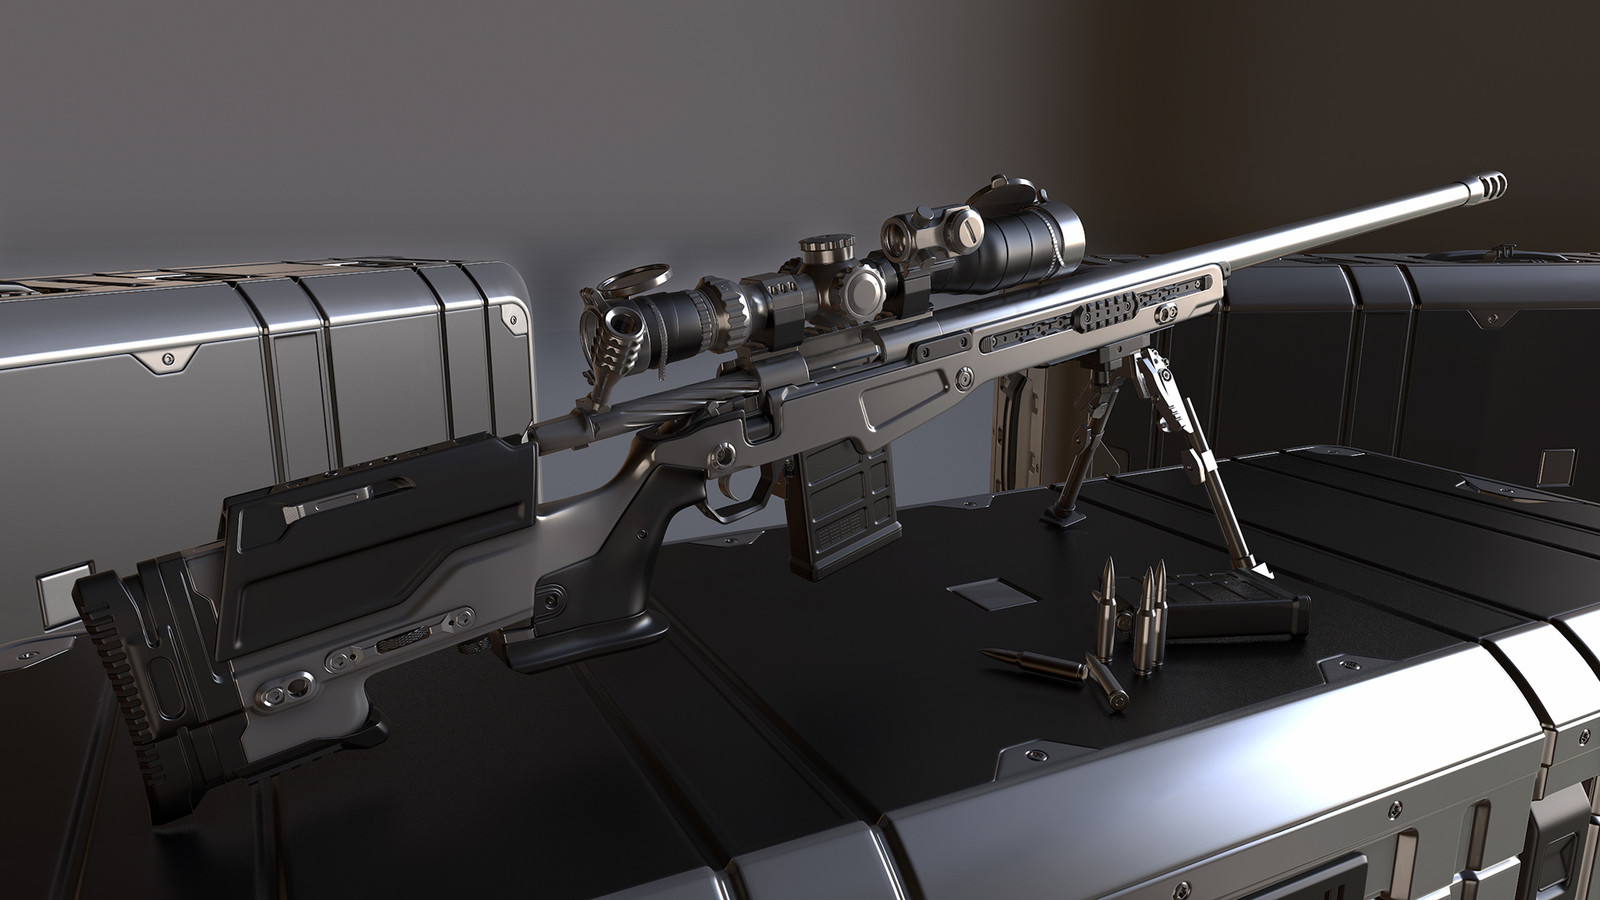 HP Sniper Rifle And Case